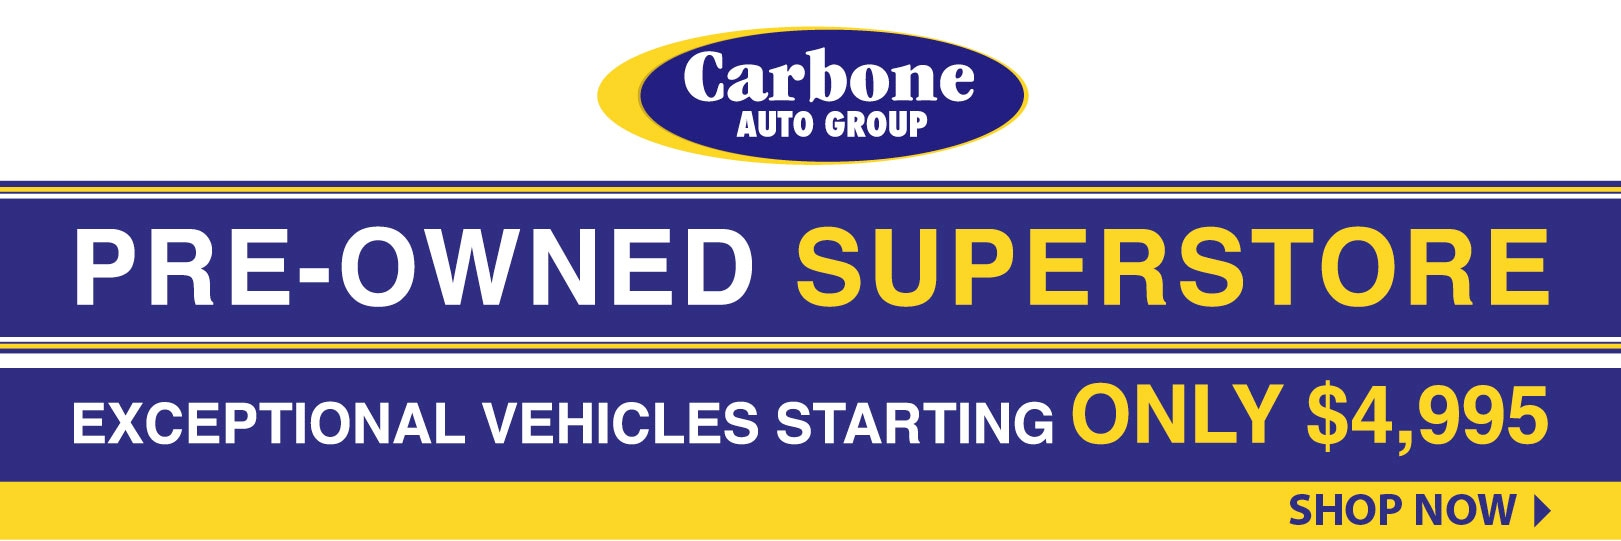 Carbone Pre Owned Superstore Used Cars For Sale In Bennington Vt 2003 Ford Explorer Fuel Filter Location Welcome